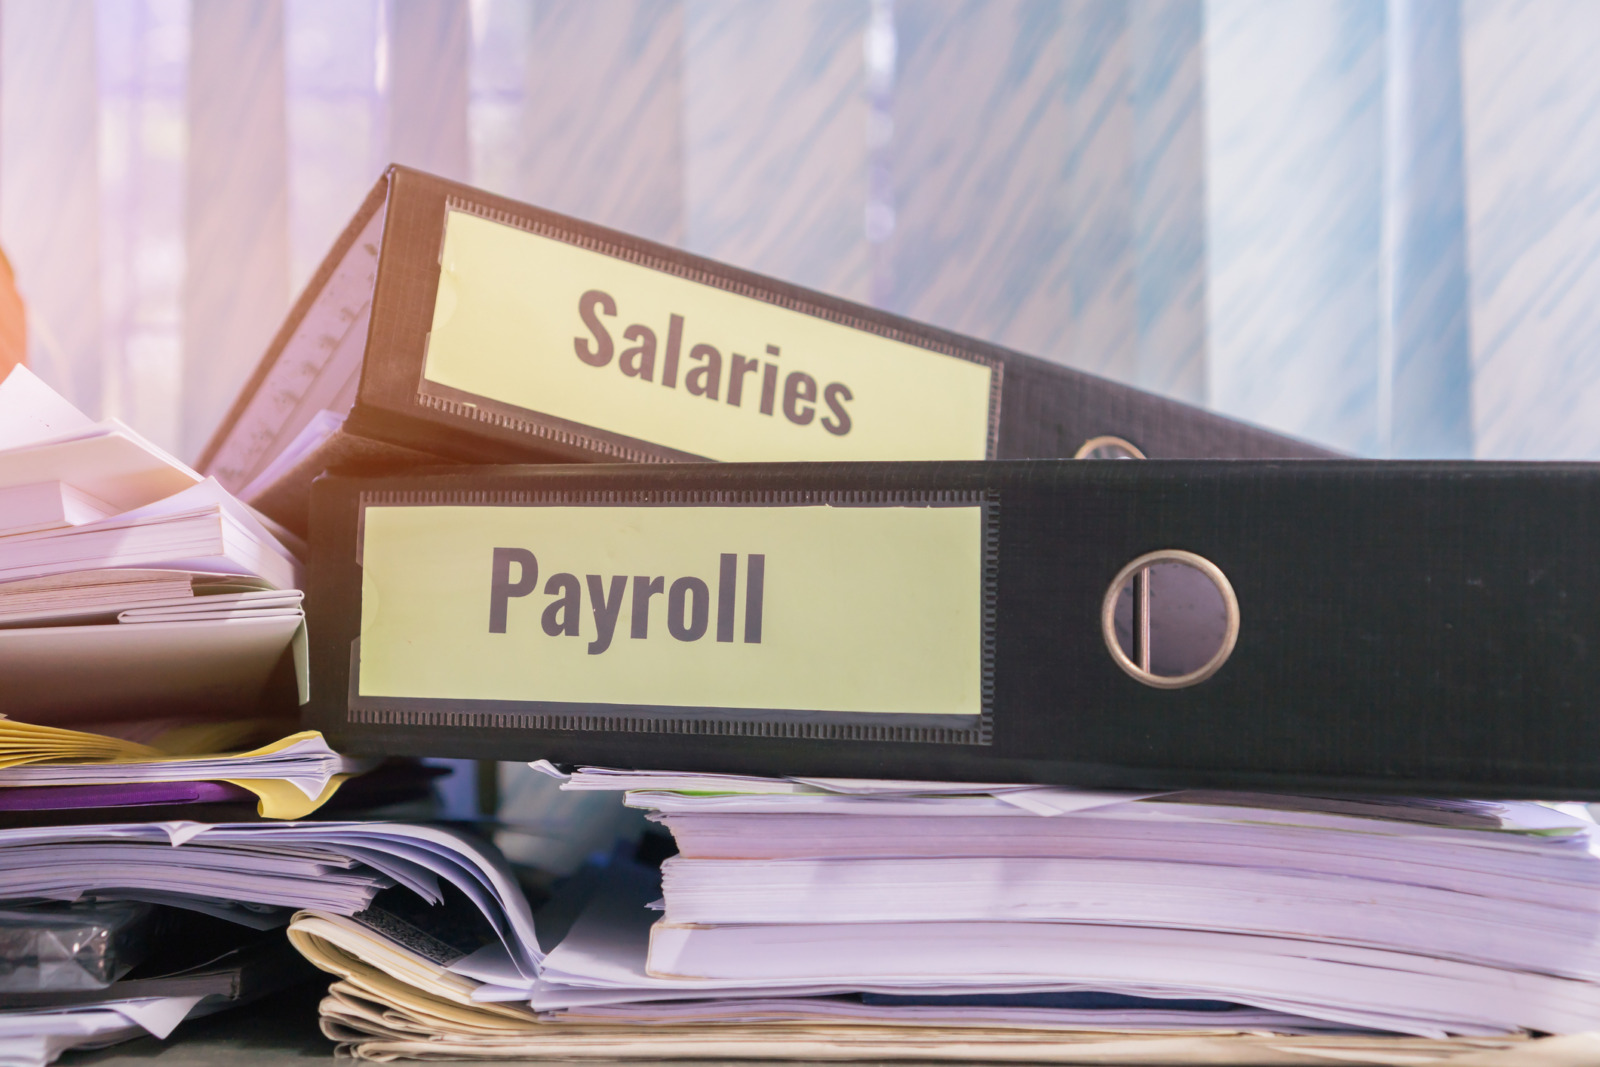 Choose a payroll technology that allows you to easily access and gain insights from your data.